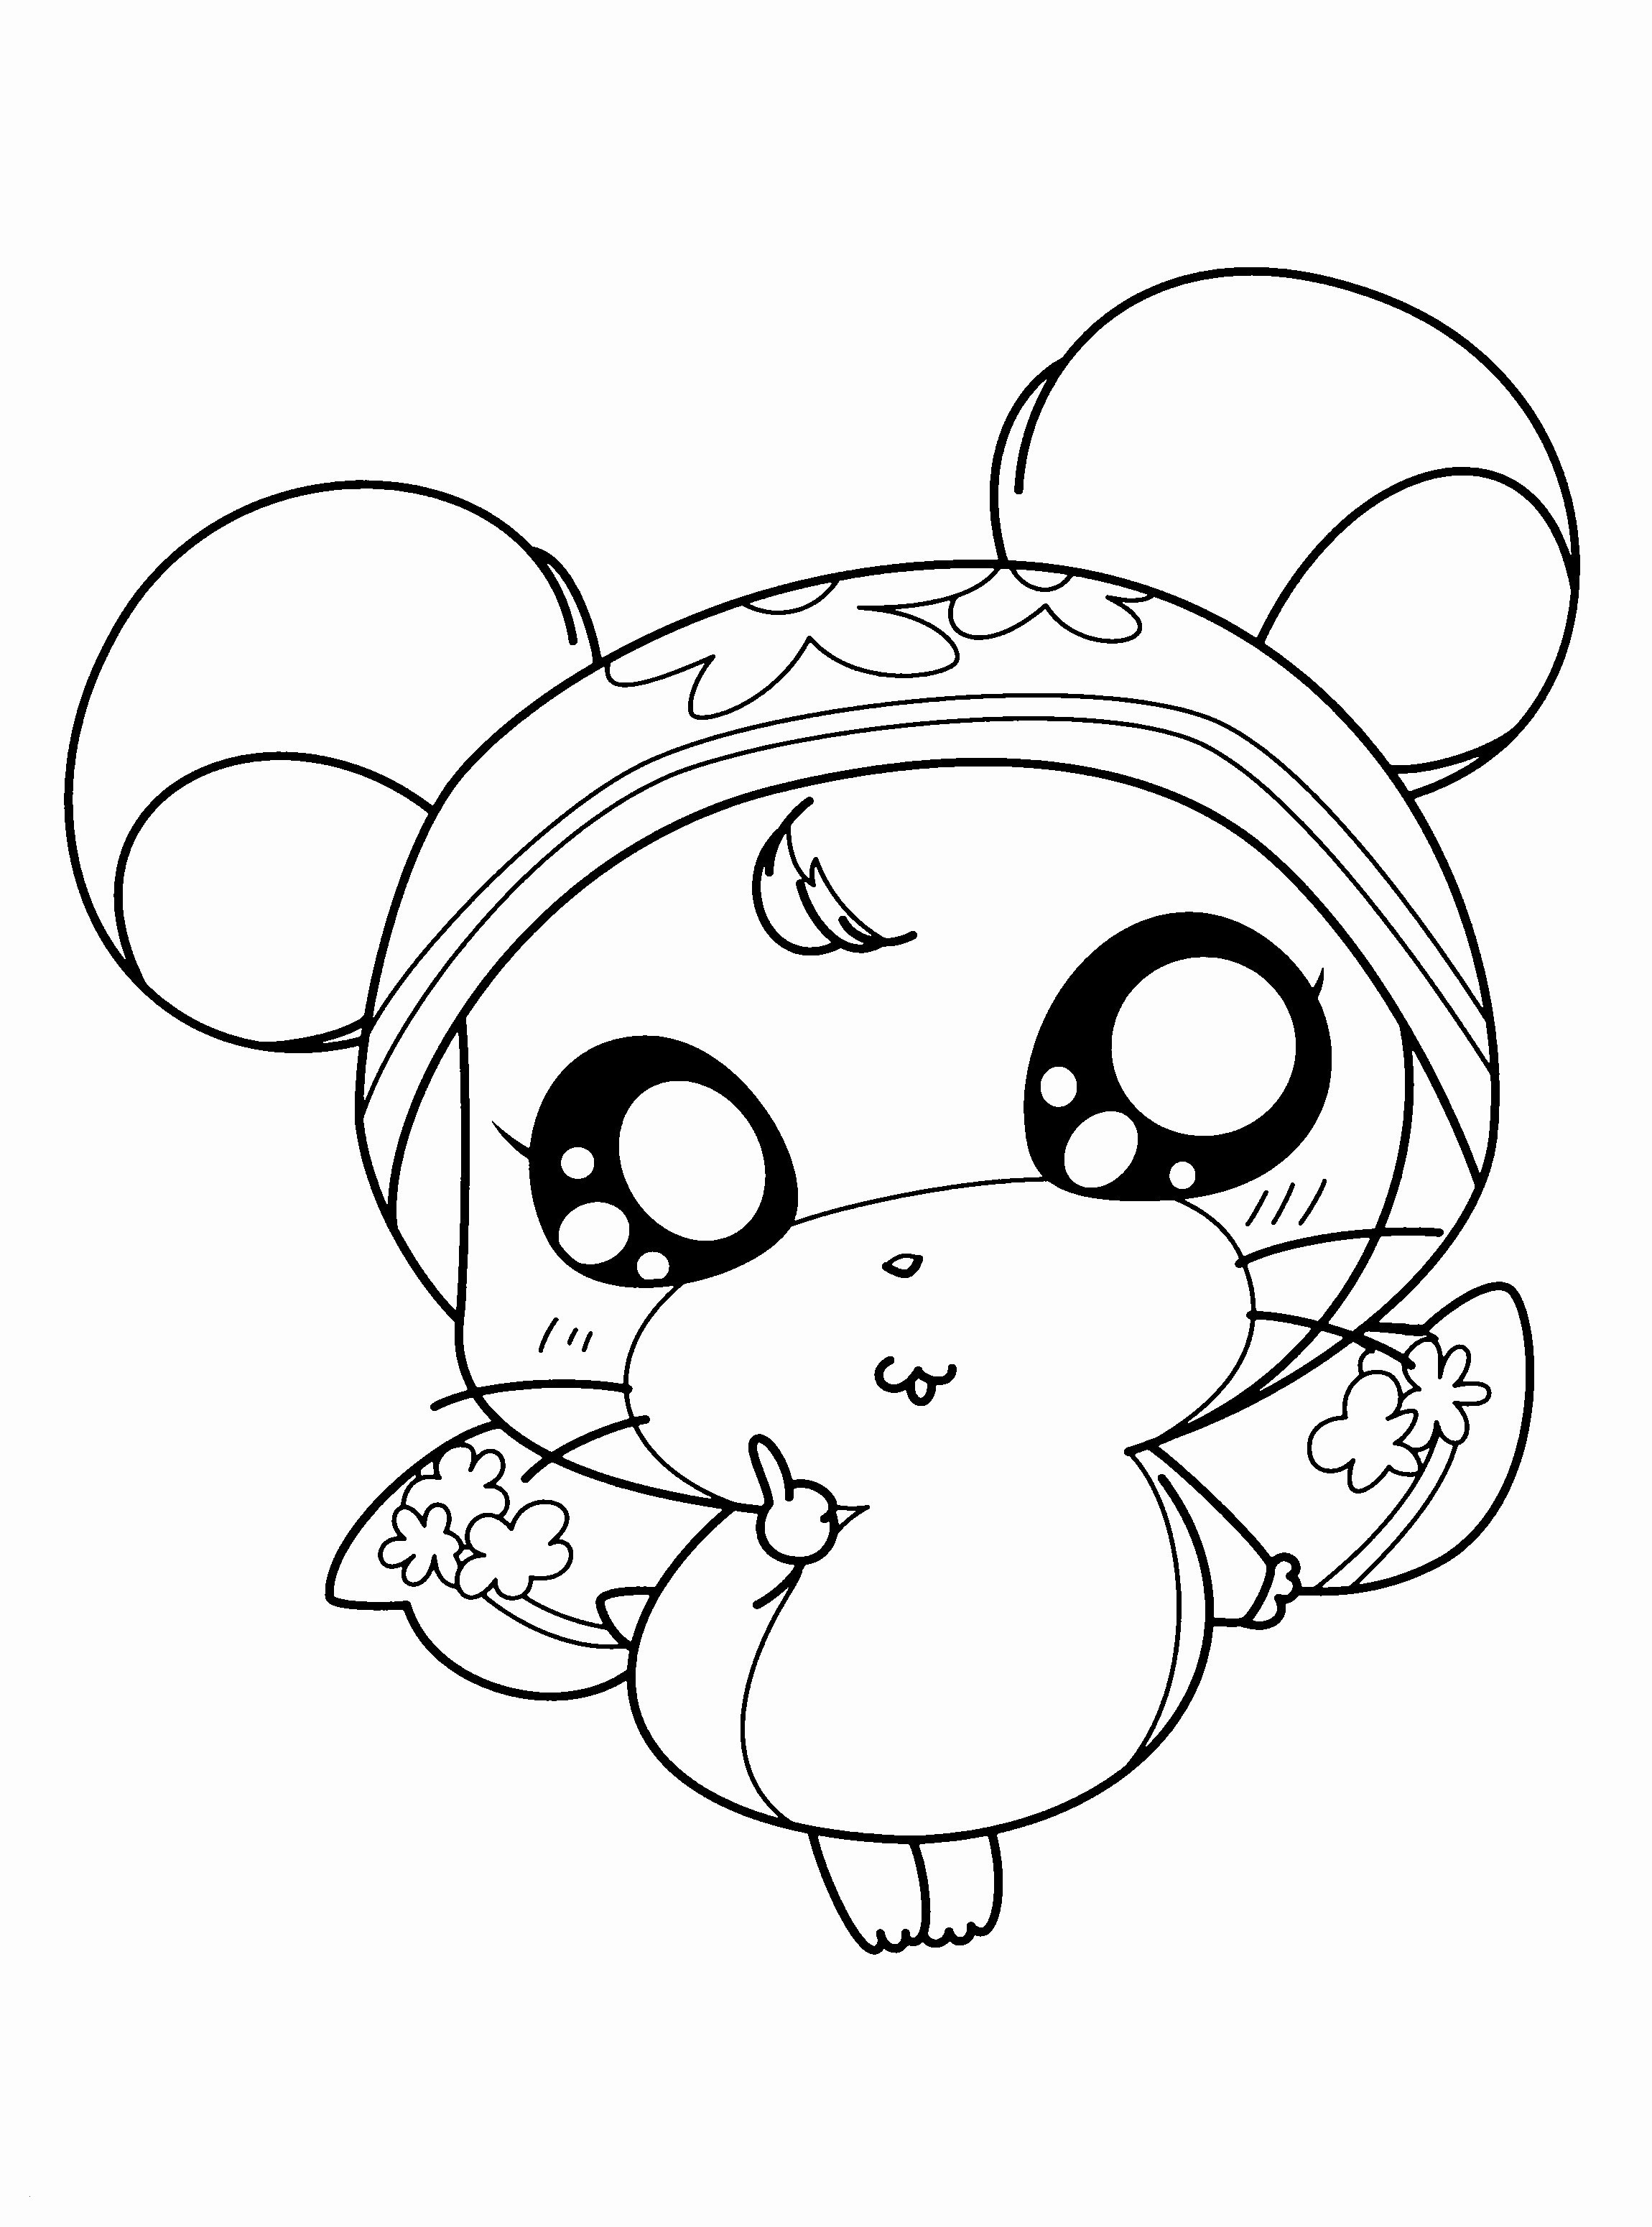 graphic about Cute Animal Coloring Pages Printable referred to as 21 Adorable Animal Coloring Webpages Obtain - Coloring Sheets